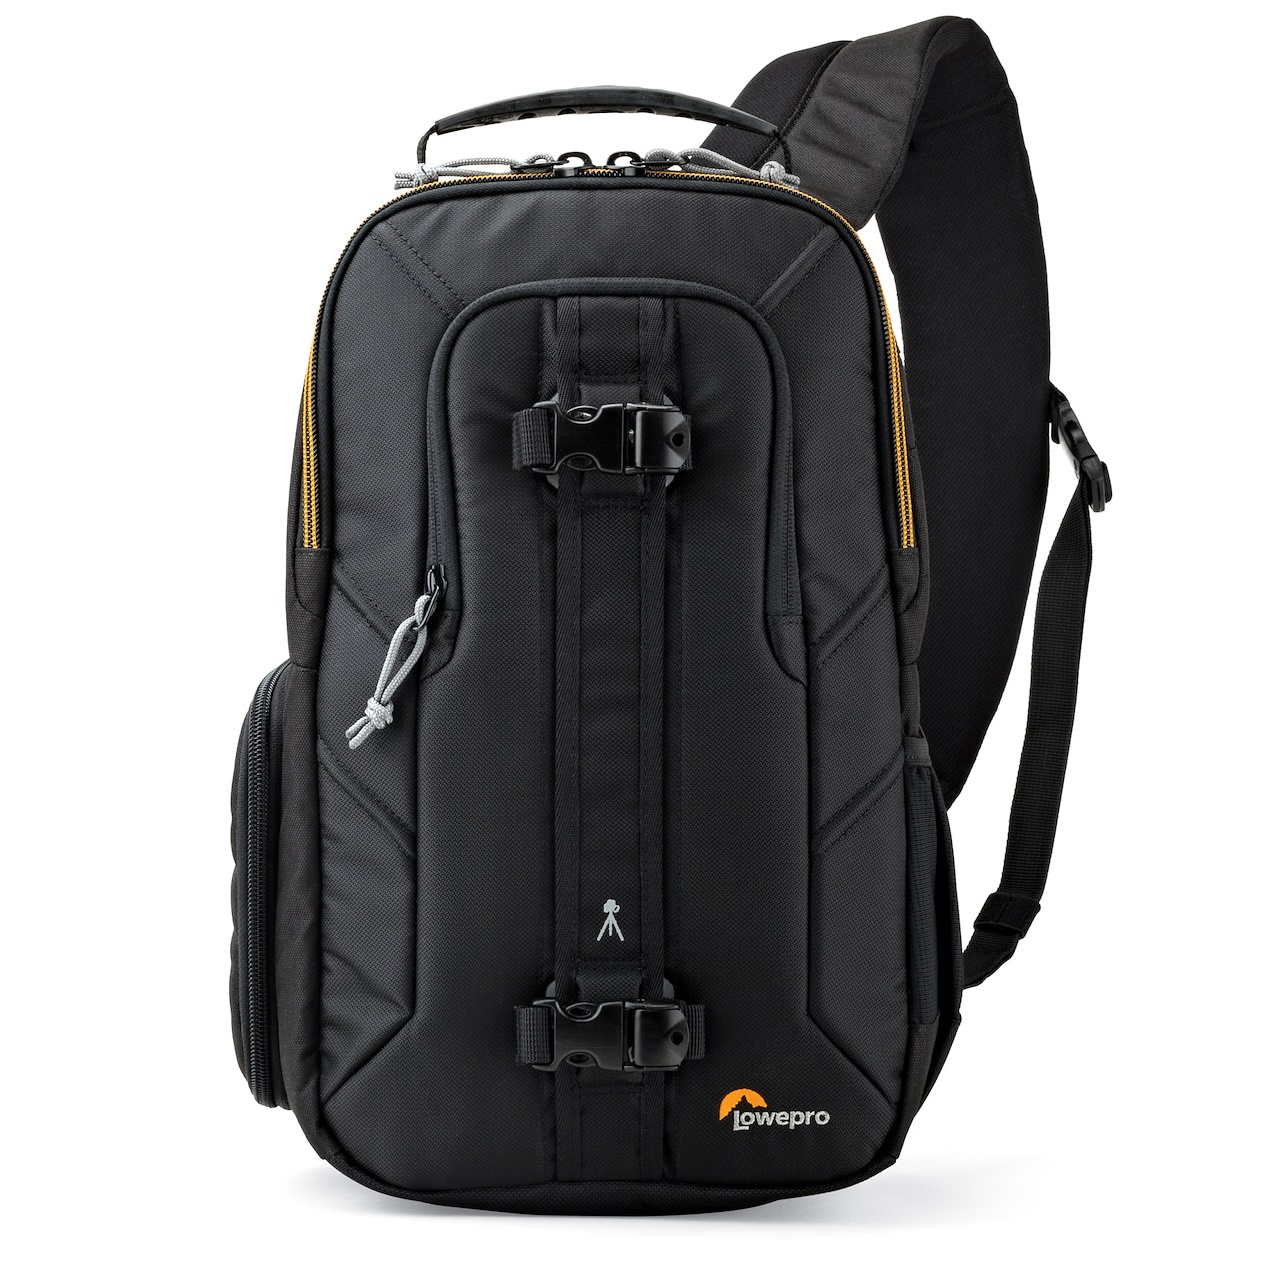 Every Need Want Day Lowepro Flipside 300 Our Is A Compact Lightweight Outdoor Camera Backpack With Body Side Access Extra Storage For Accessories And Personal Items Plus The Ability